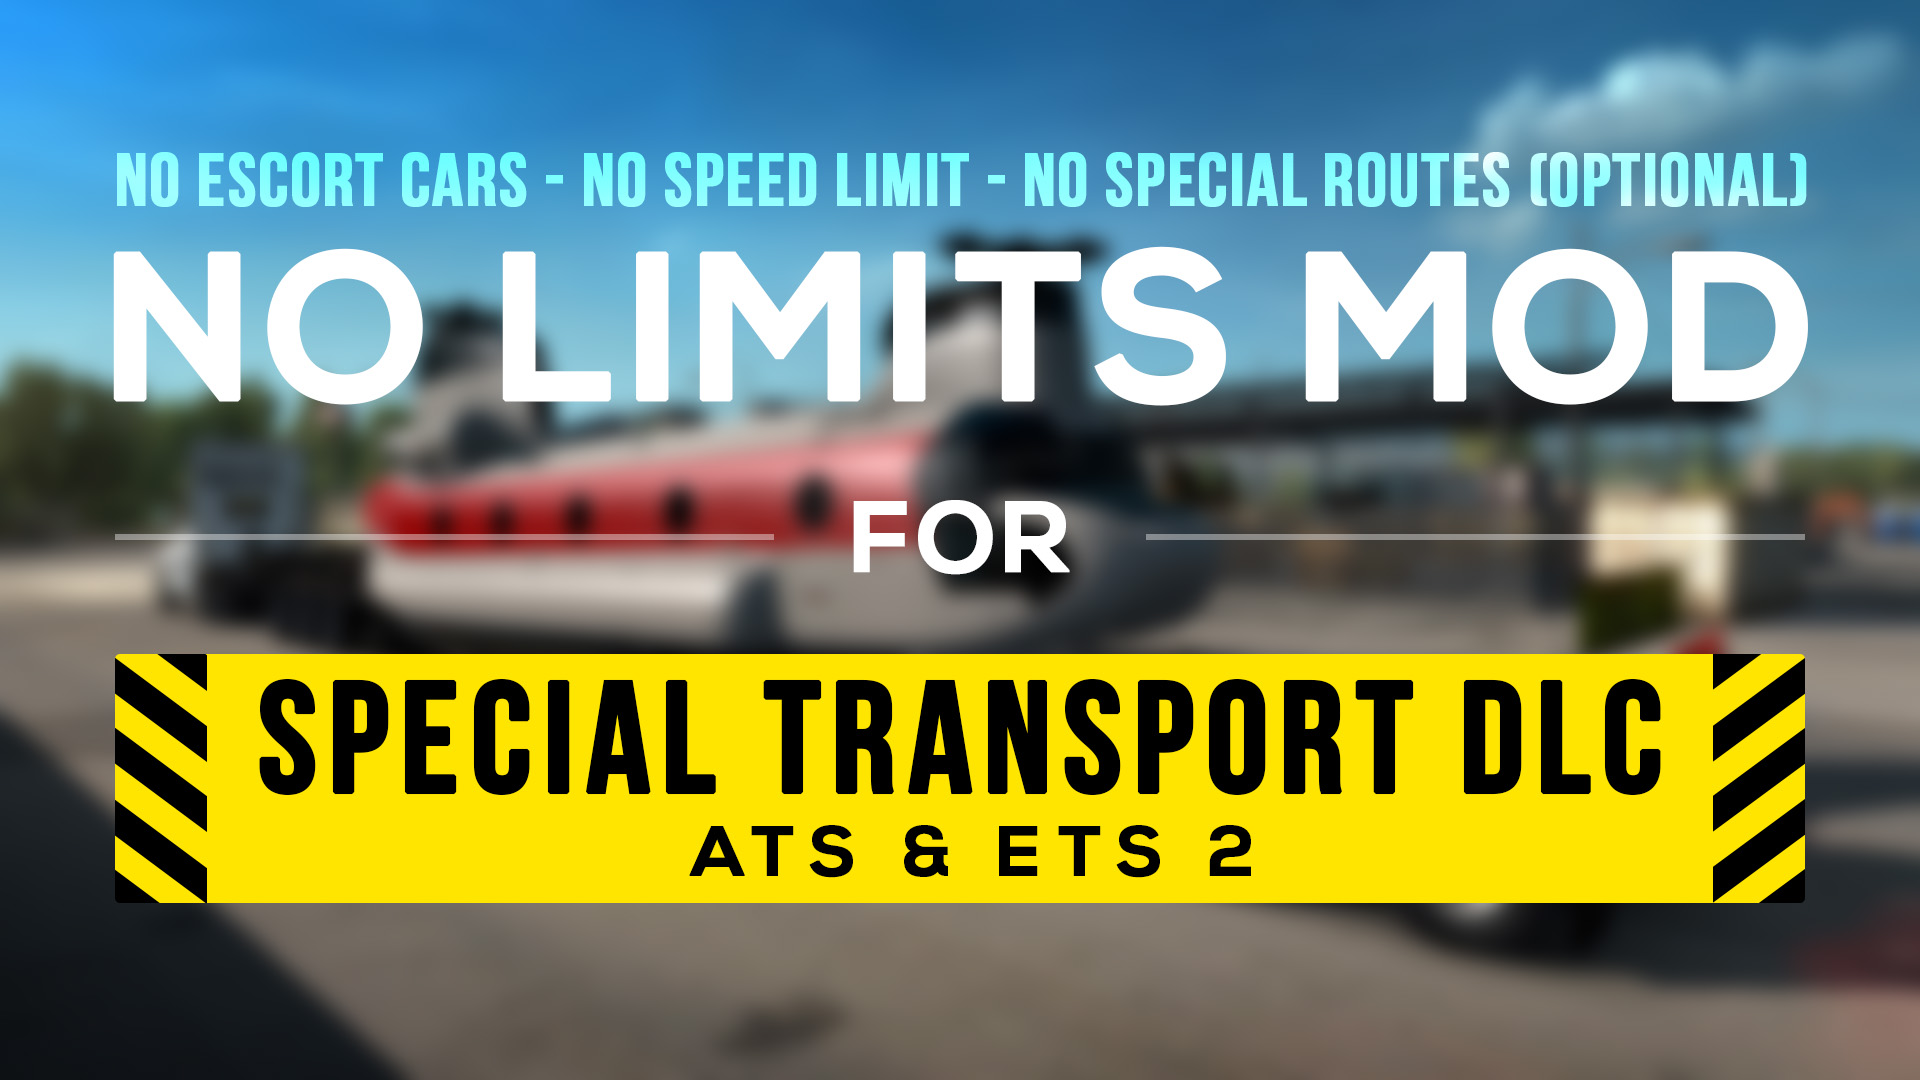 No Limits Mod v1.3 for Special Transport DLC